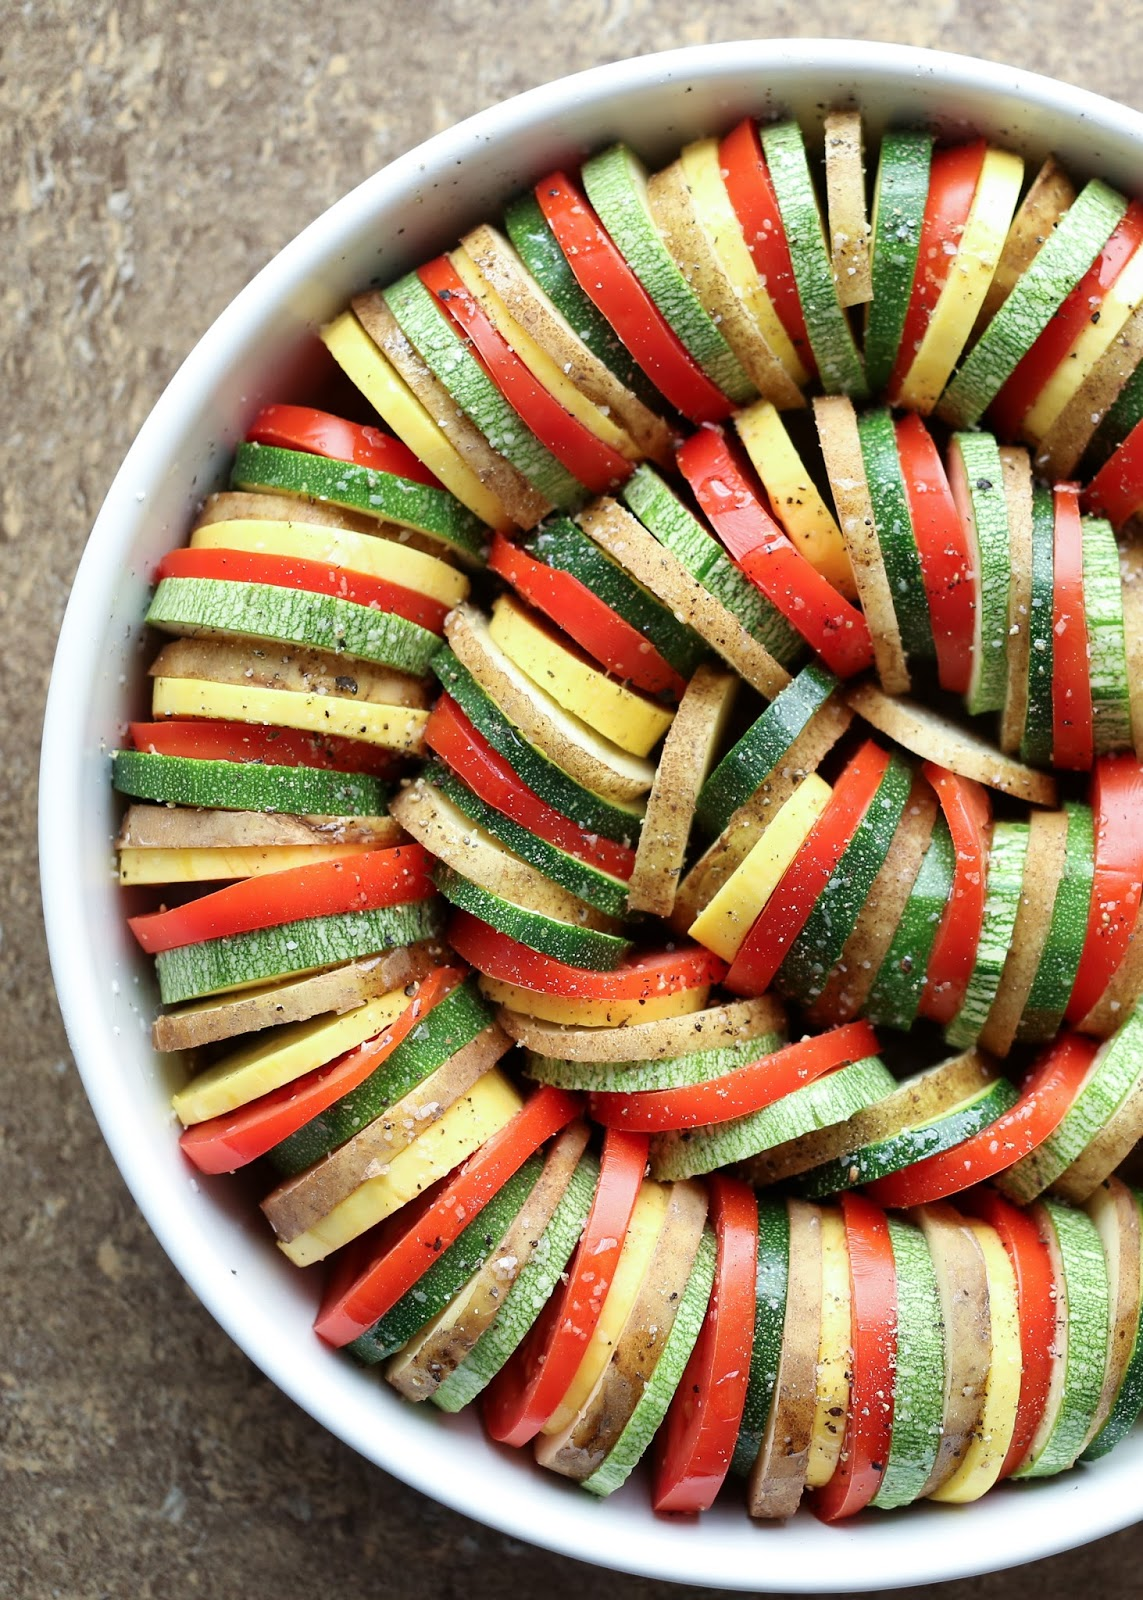 Summer Vegetable Tian Recipe with Zucchini, Tomatoes, and Potatoes by Barefeet In The Kitchen